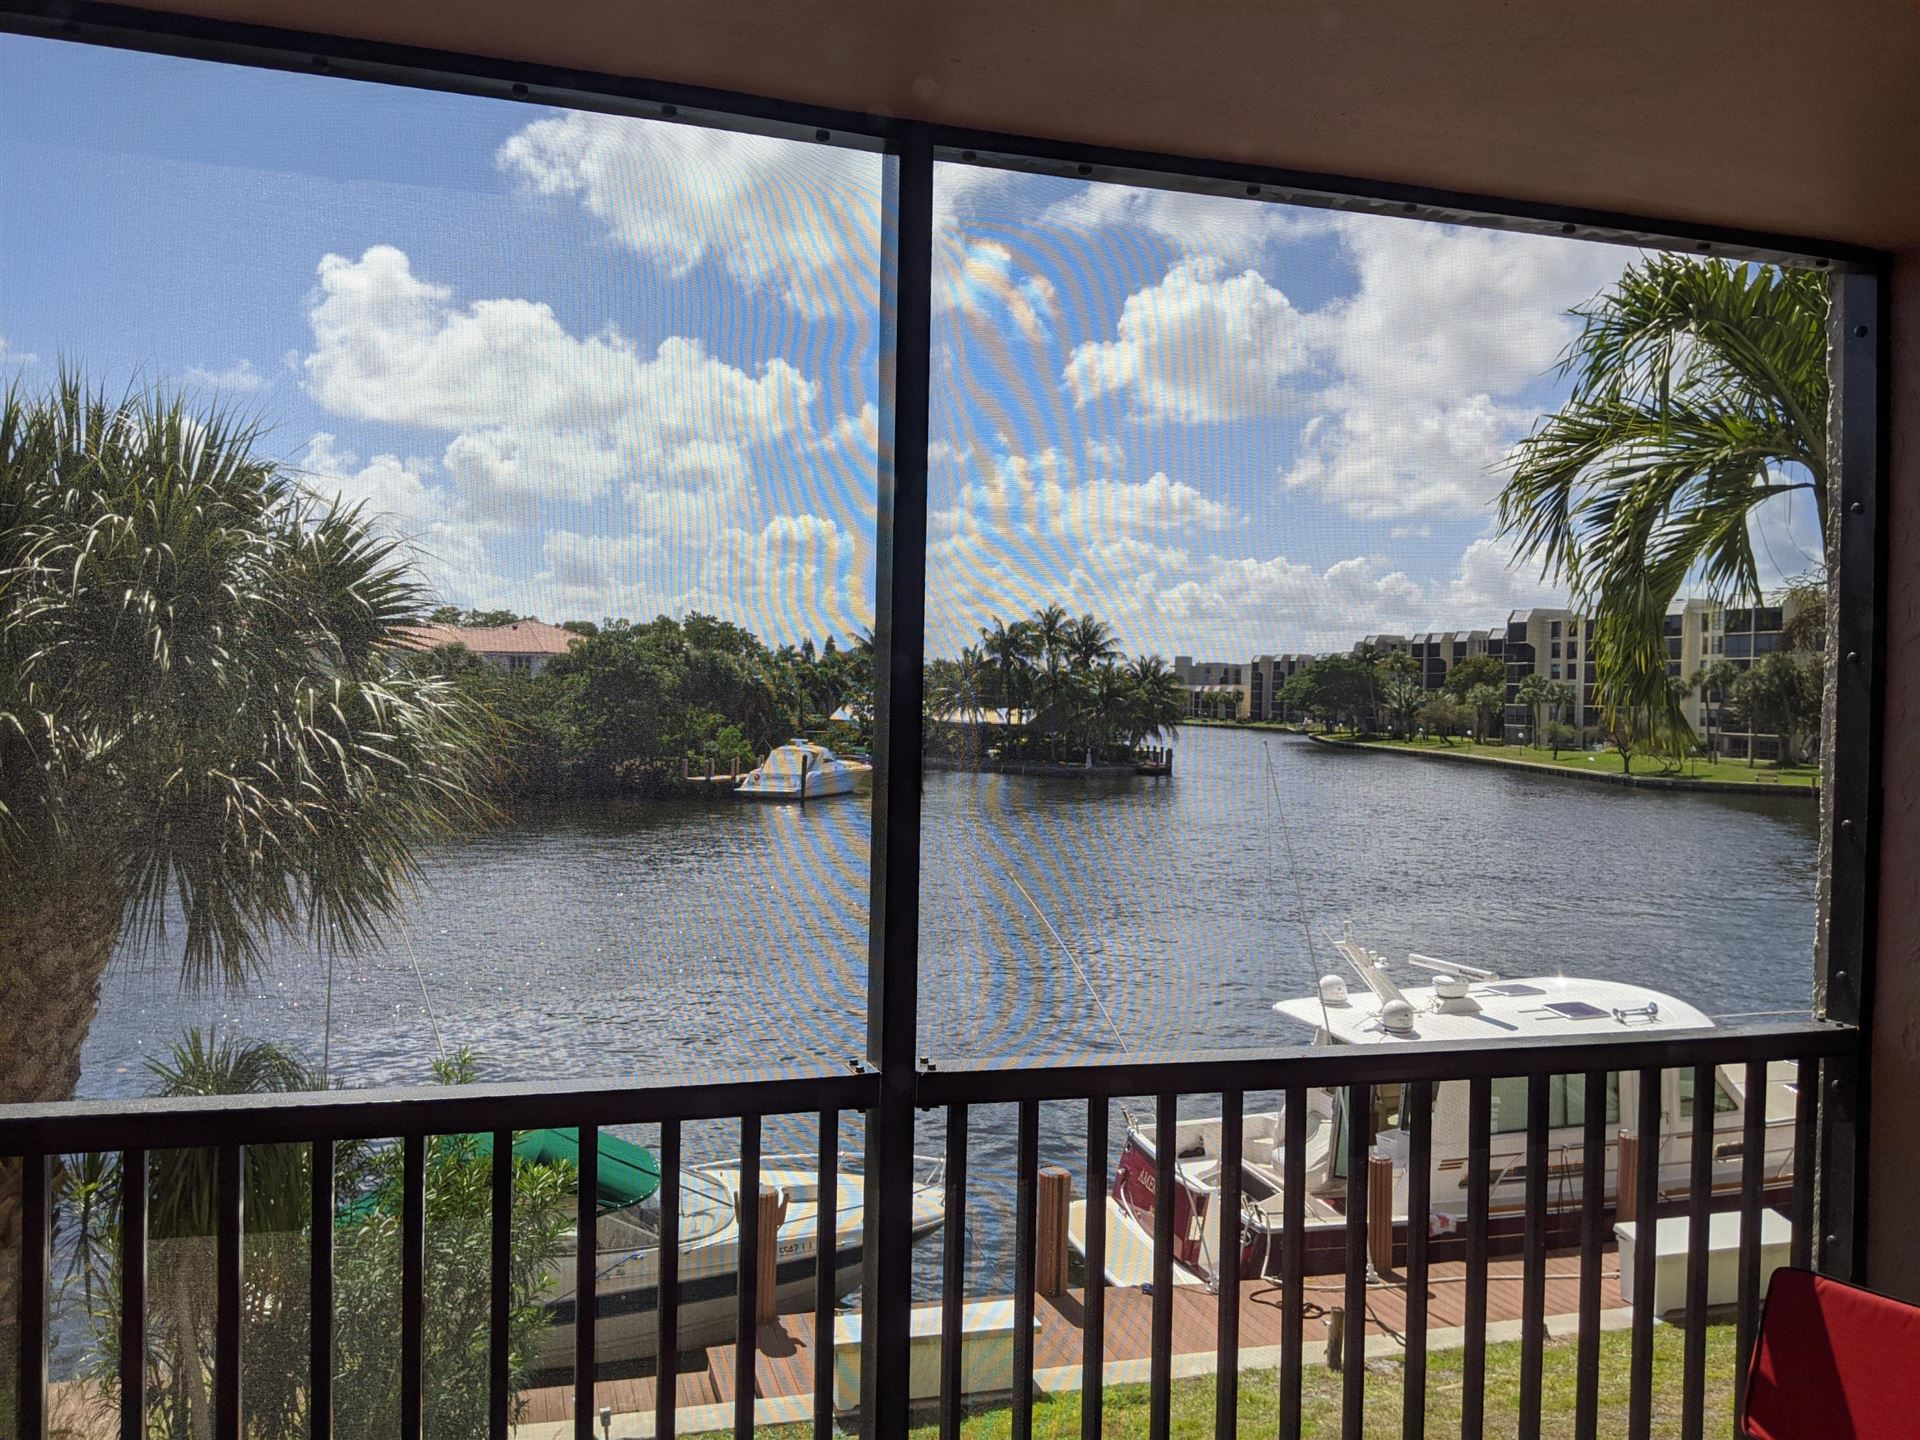 22 Royal Palm Way #2050, Boca Raton, FL 33432 - MLS#: RX-10610696